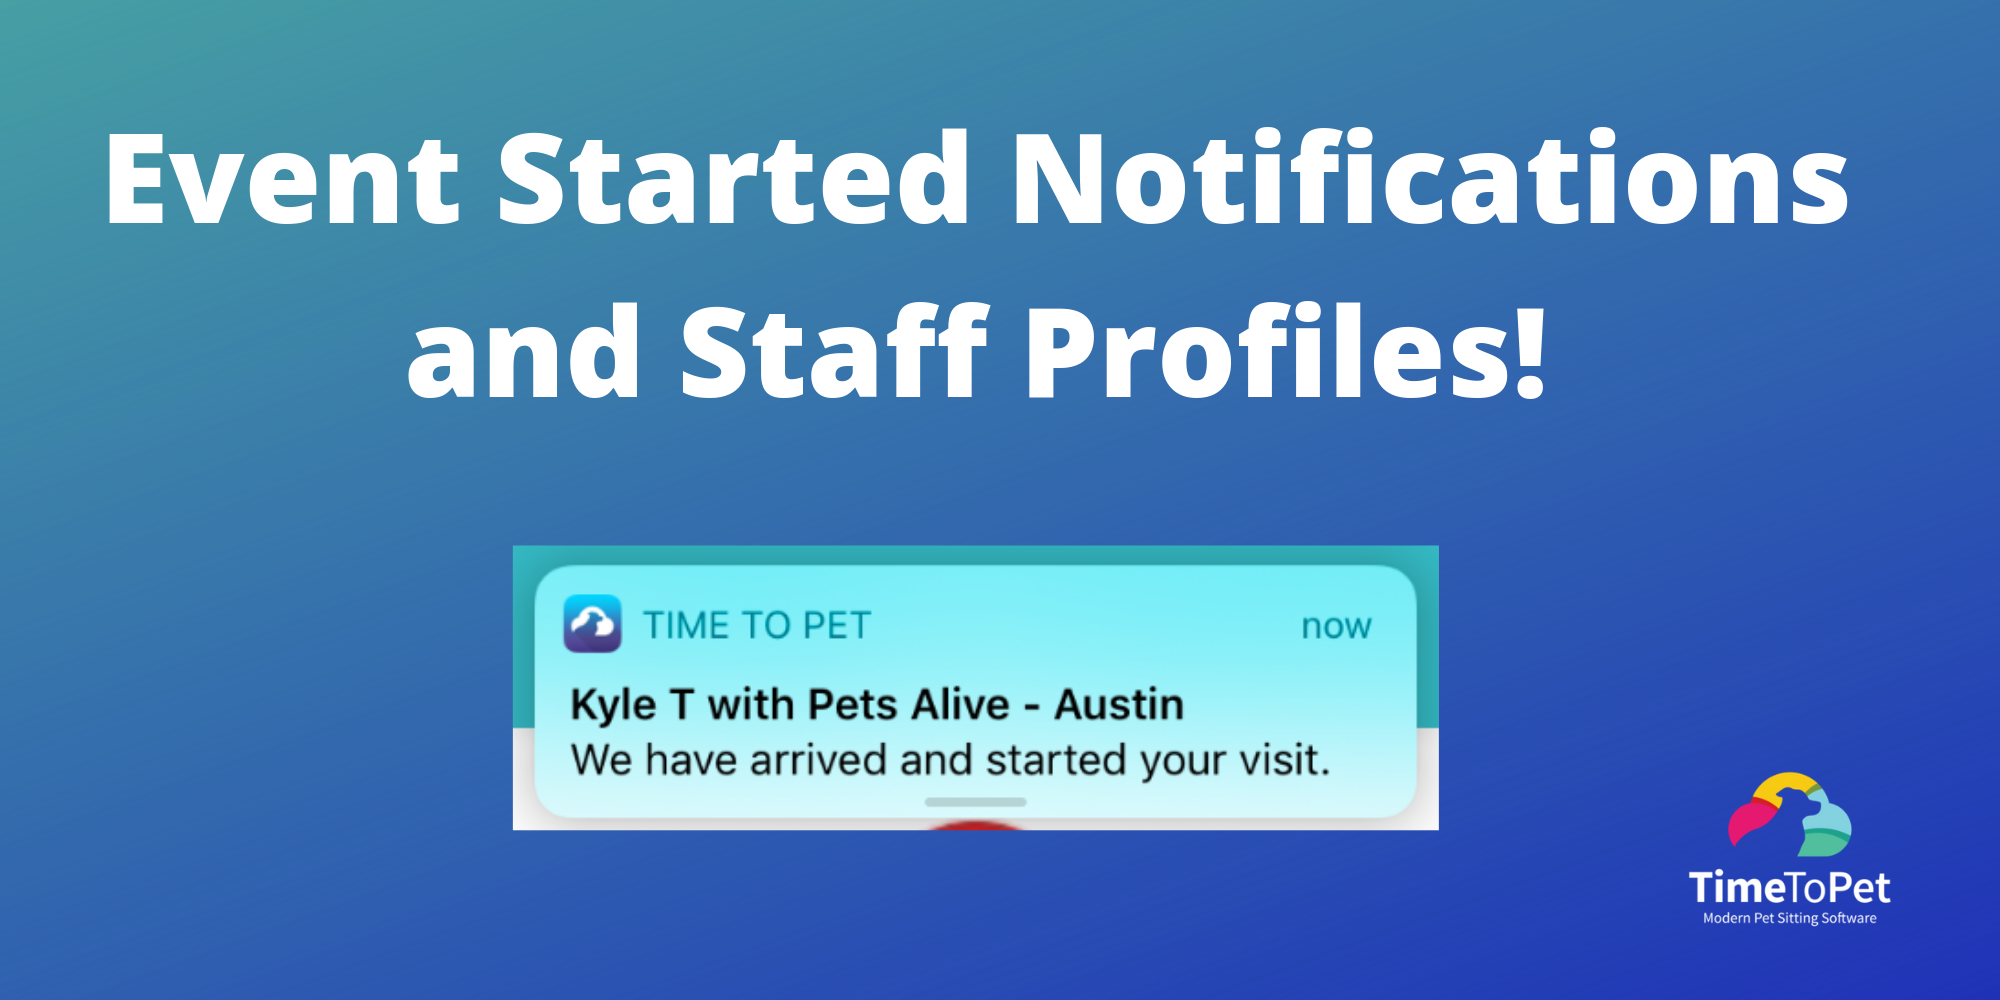 Event-Started-Notifications-and-Staff-Profiles.png